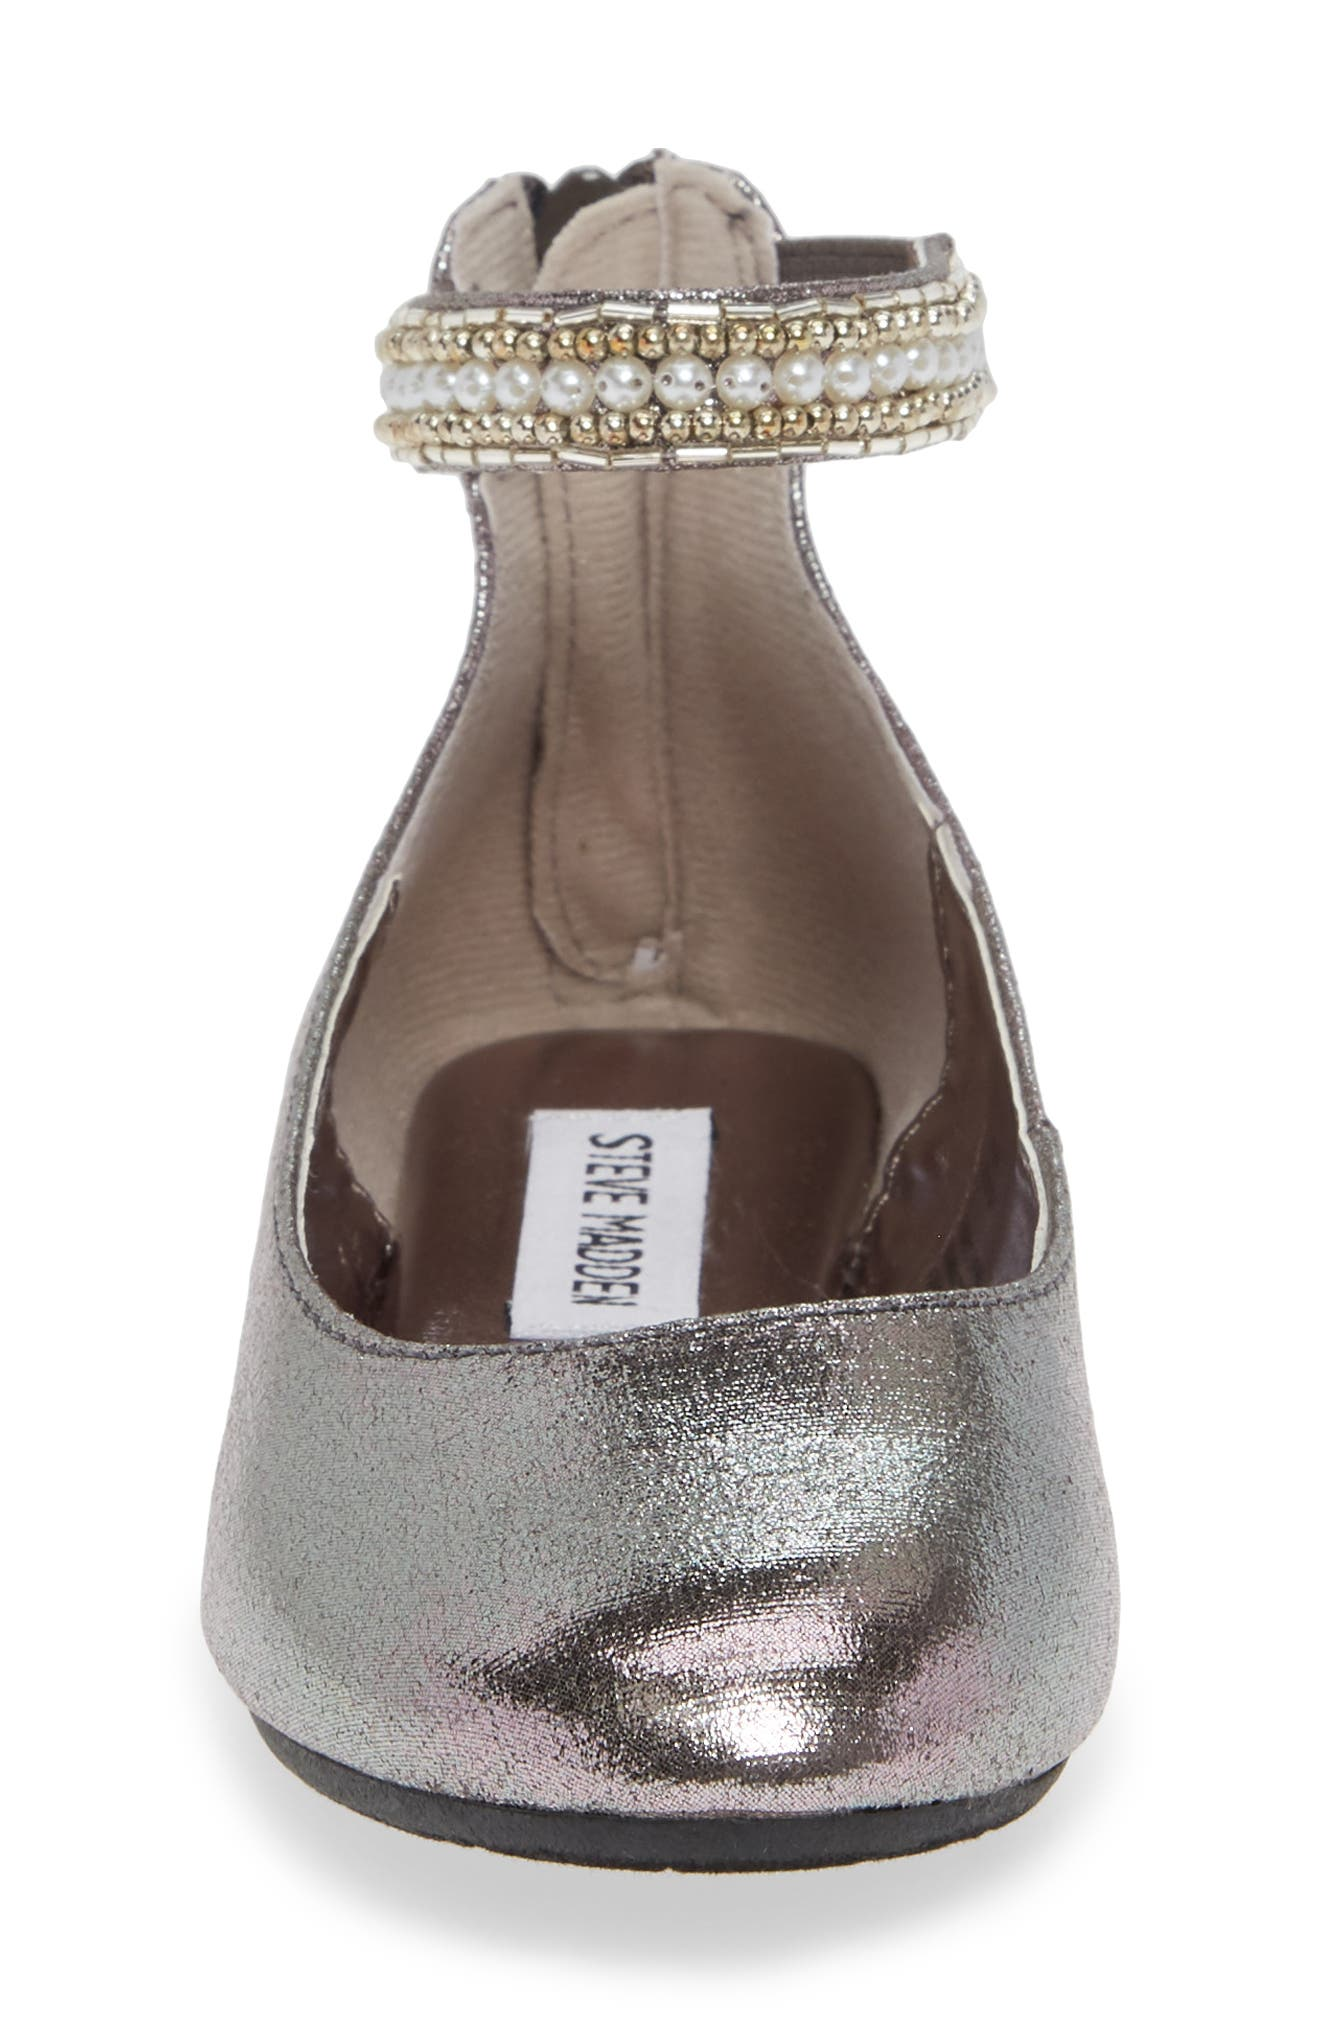 'Jziler' Sequined Round Toe Ballet Flat,                             Alternate thumbnail 4, color,                             020